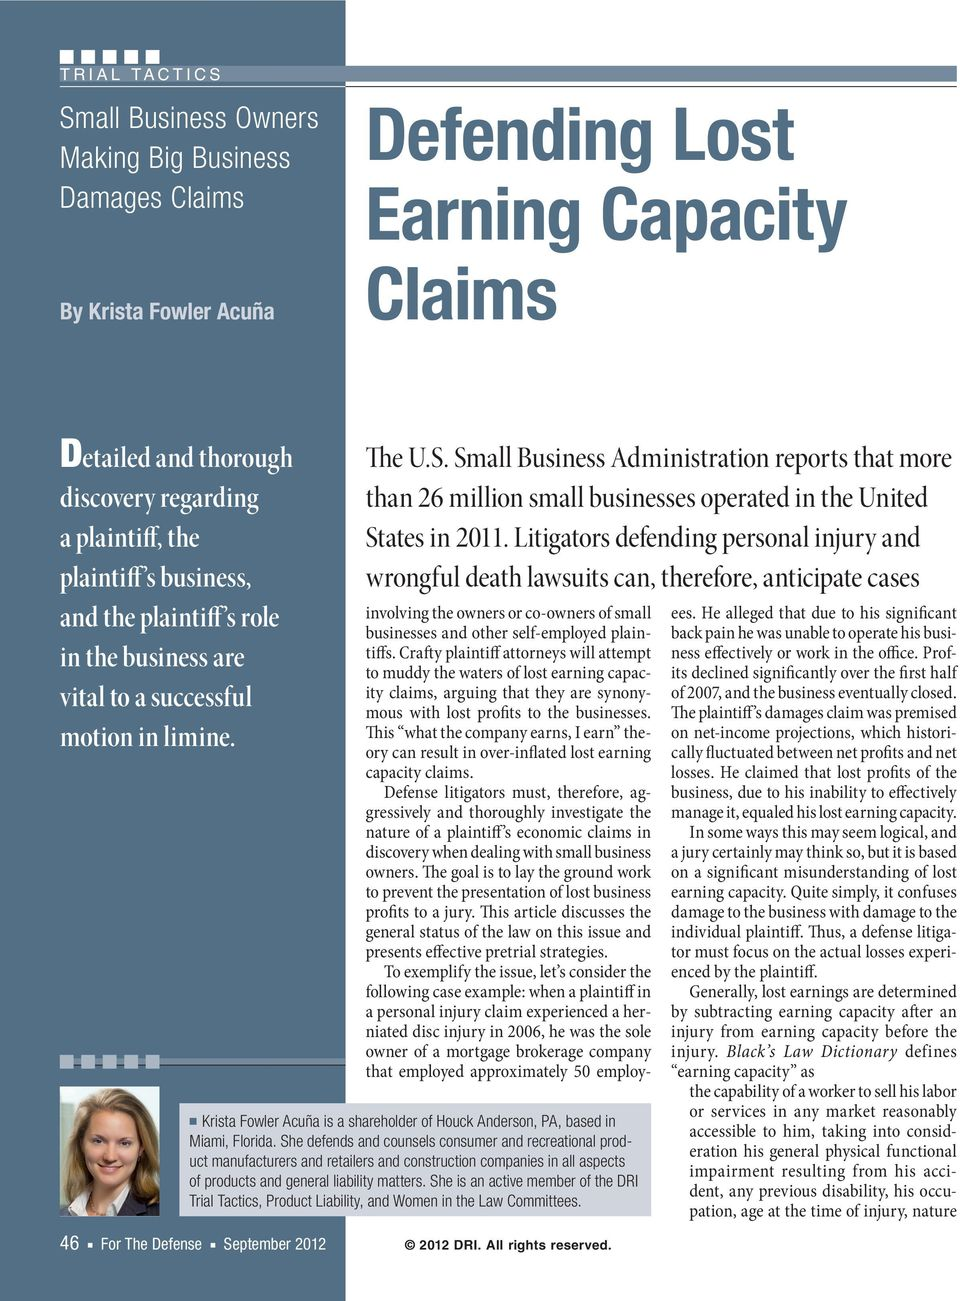 Small Business Administration reports that more than 26 million small businesses operated in the United States in 2011.